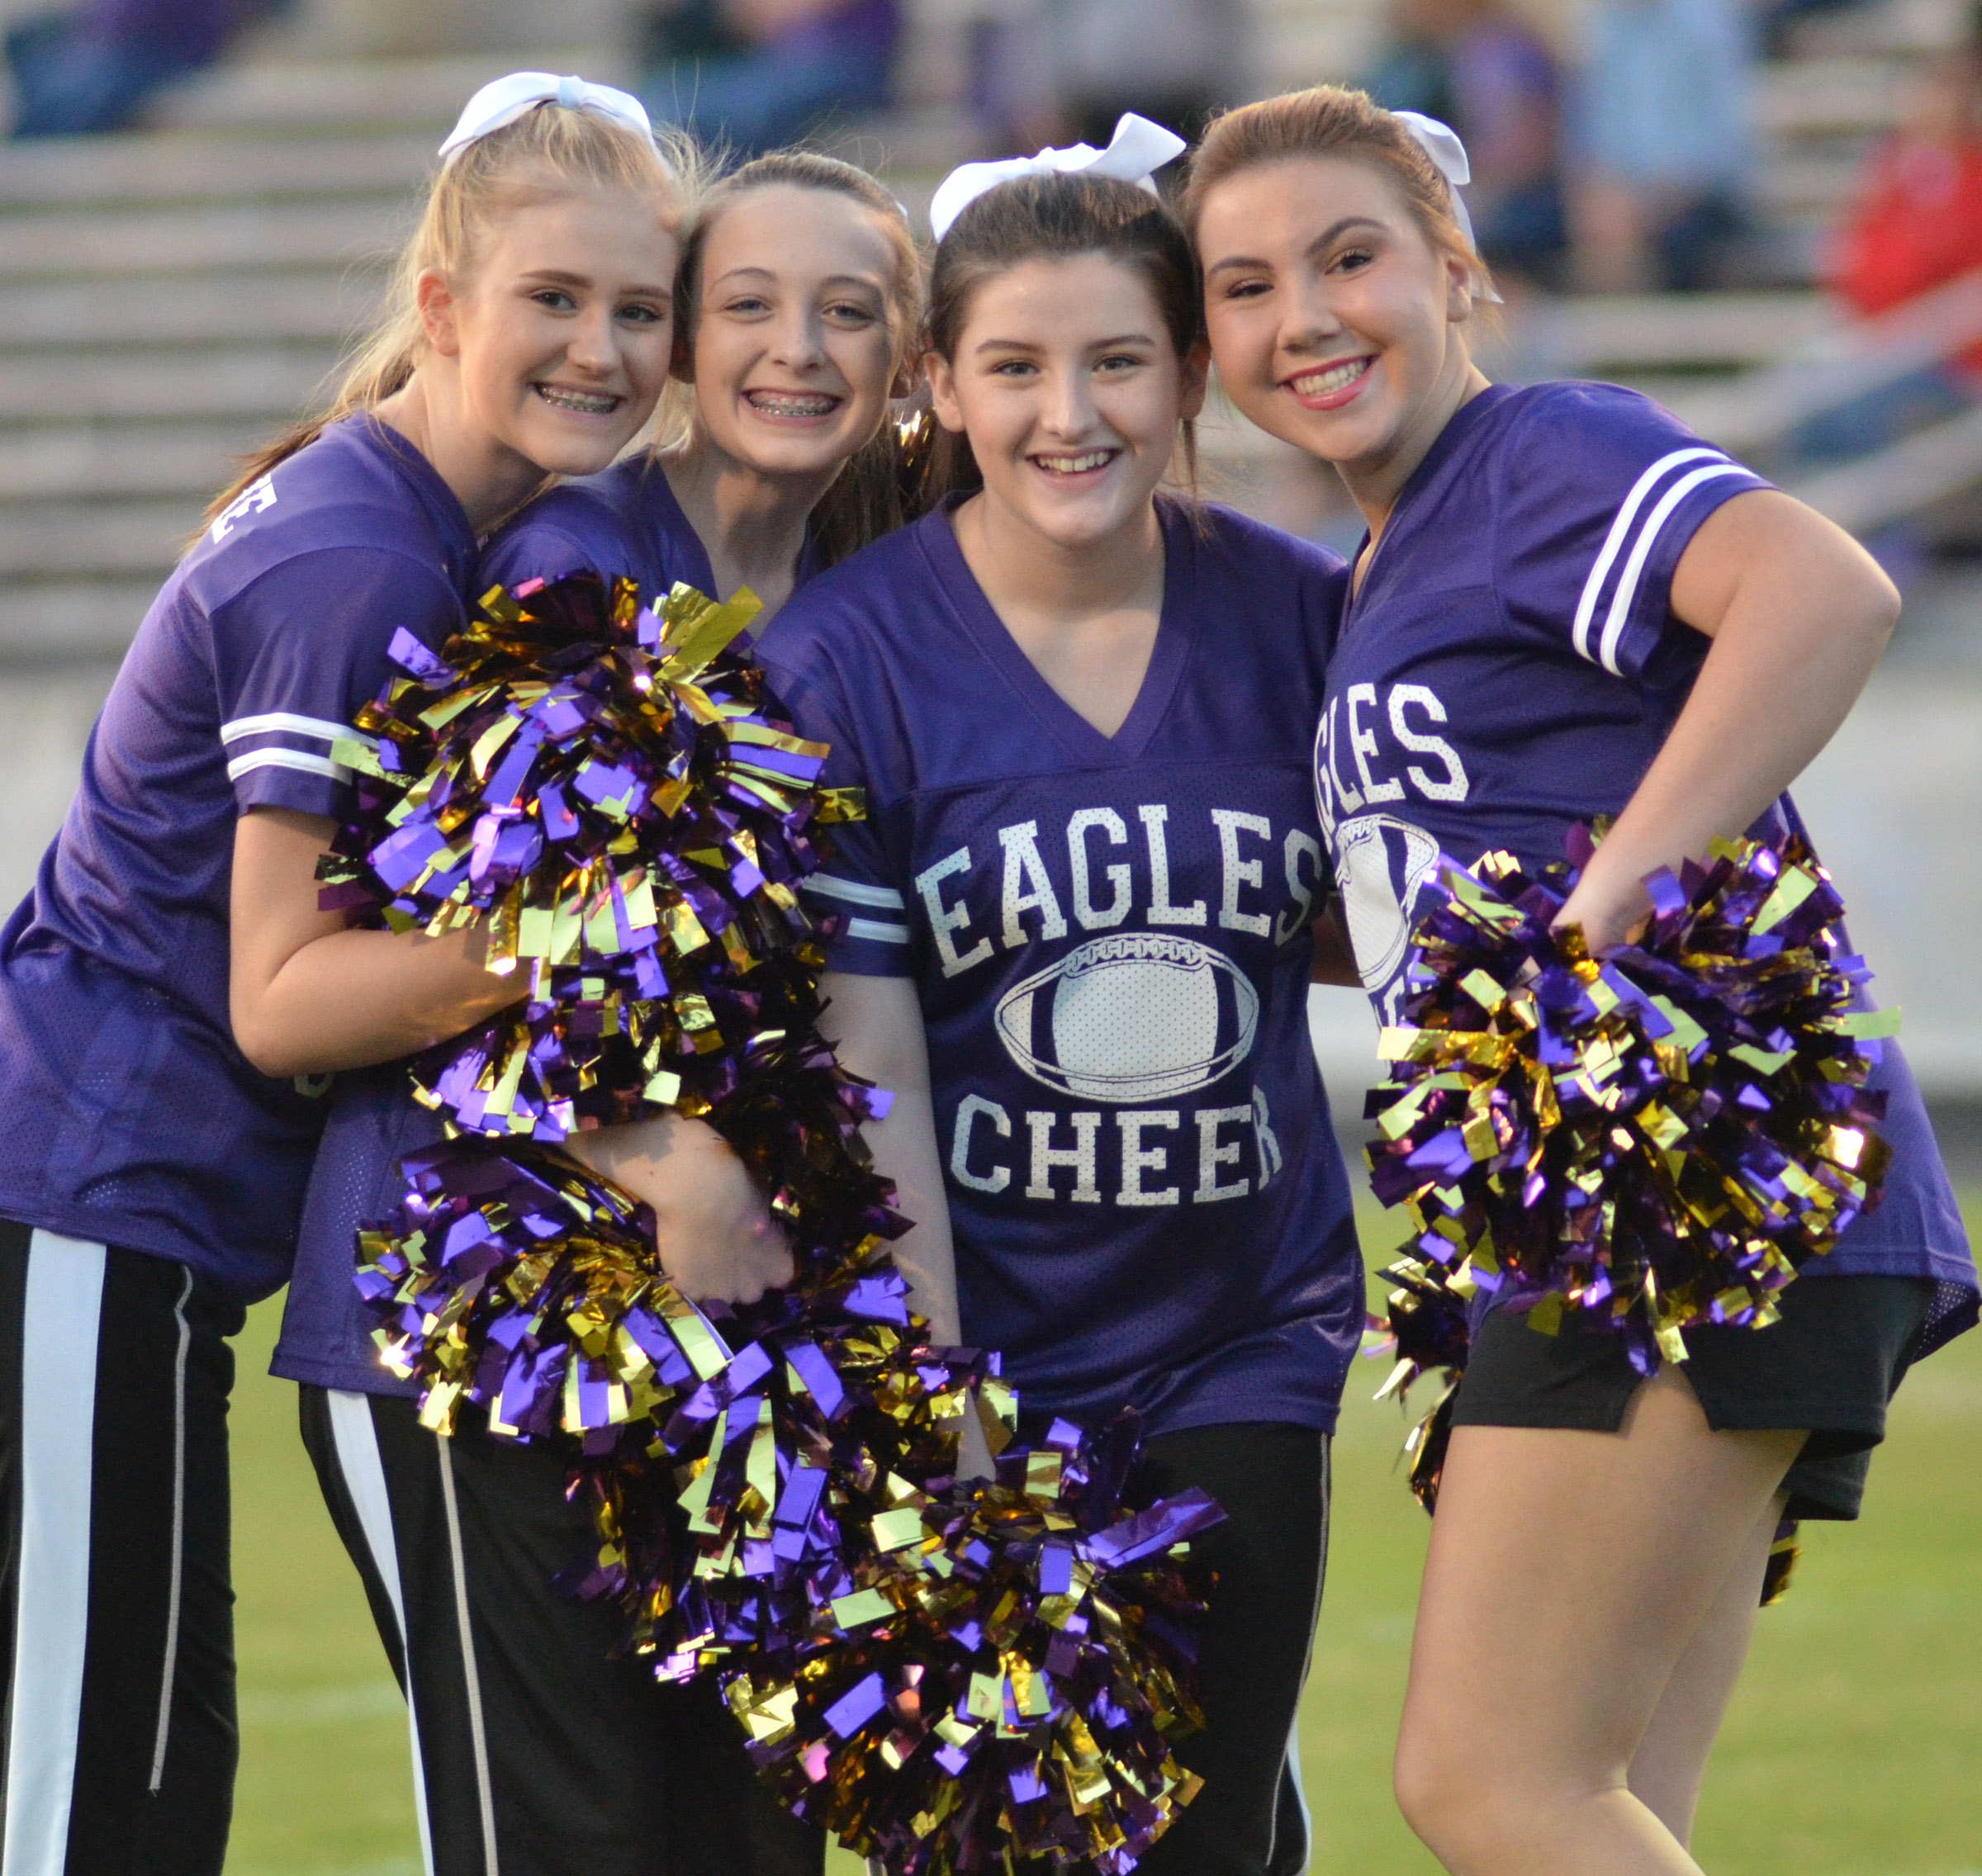 CHS cheerleaders, from left, sophomore Isabella Osborne, junior Caleigh Bright and sophomores Alli Wilson and Lauryn Agathen get set to run on the field with the football team.